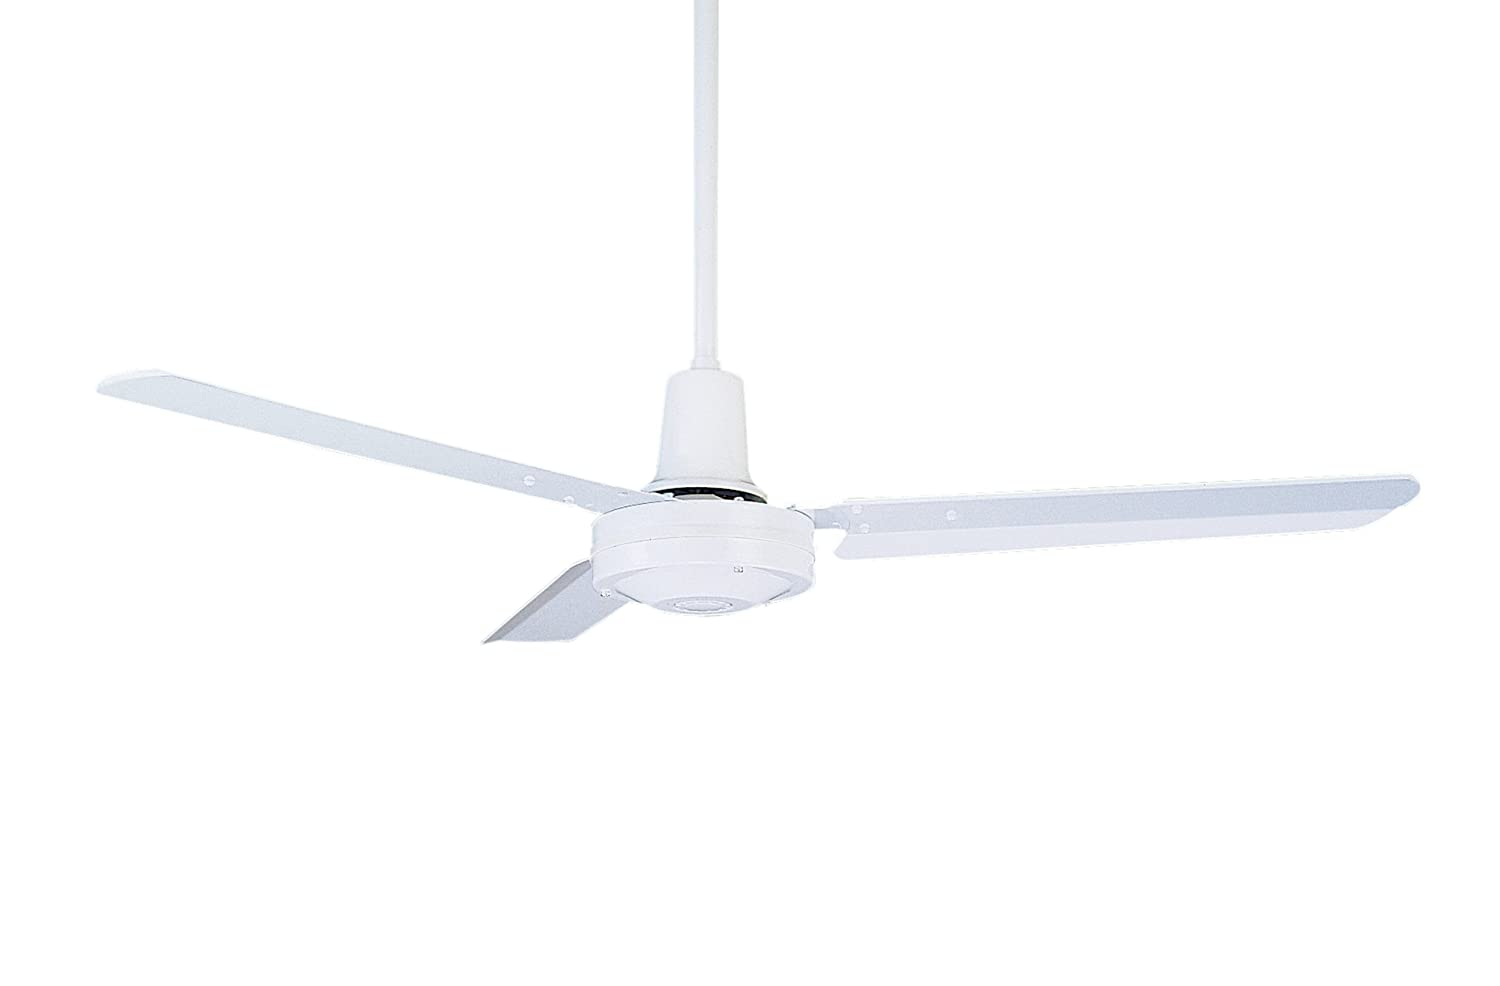 Emerson ceiling fans hf948bs industrial fan indoor ceiling fan emerson ceiling fans hf948bs industrial fan indoor ceiling fan with 48 inch blades brushed steel finish circular saw blades amazon aloadofball Choice Image